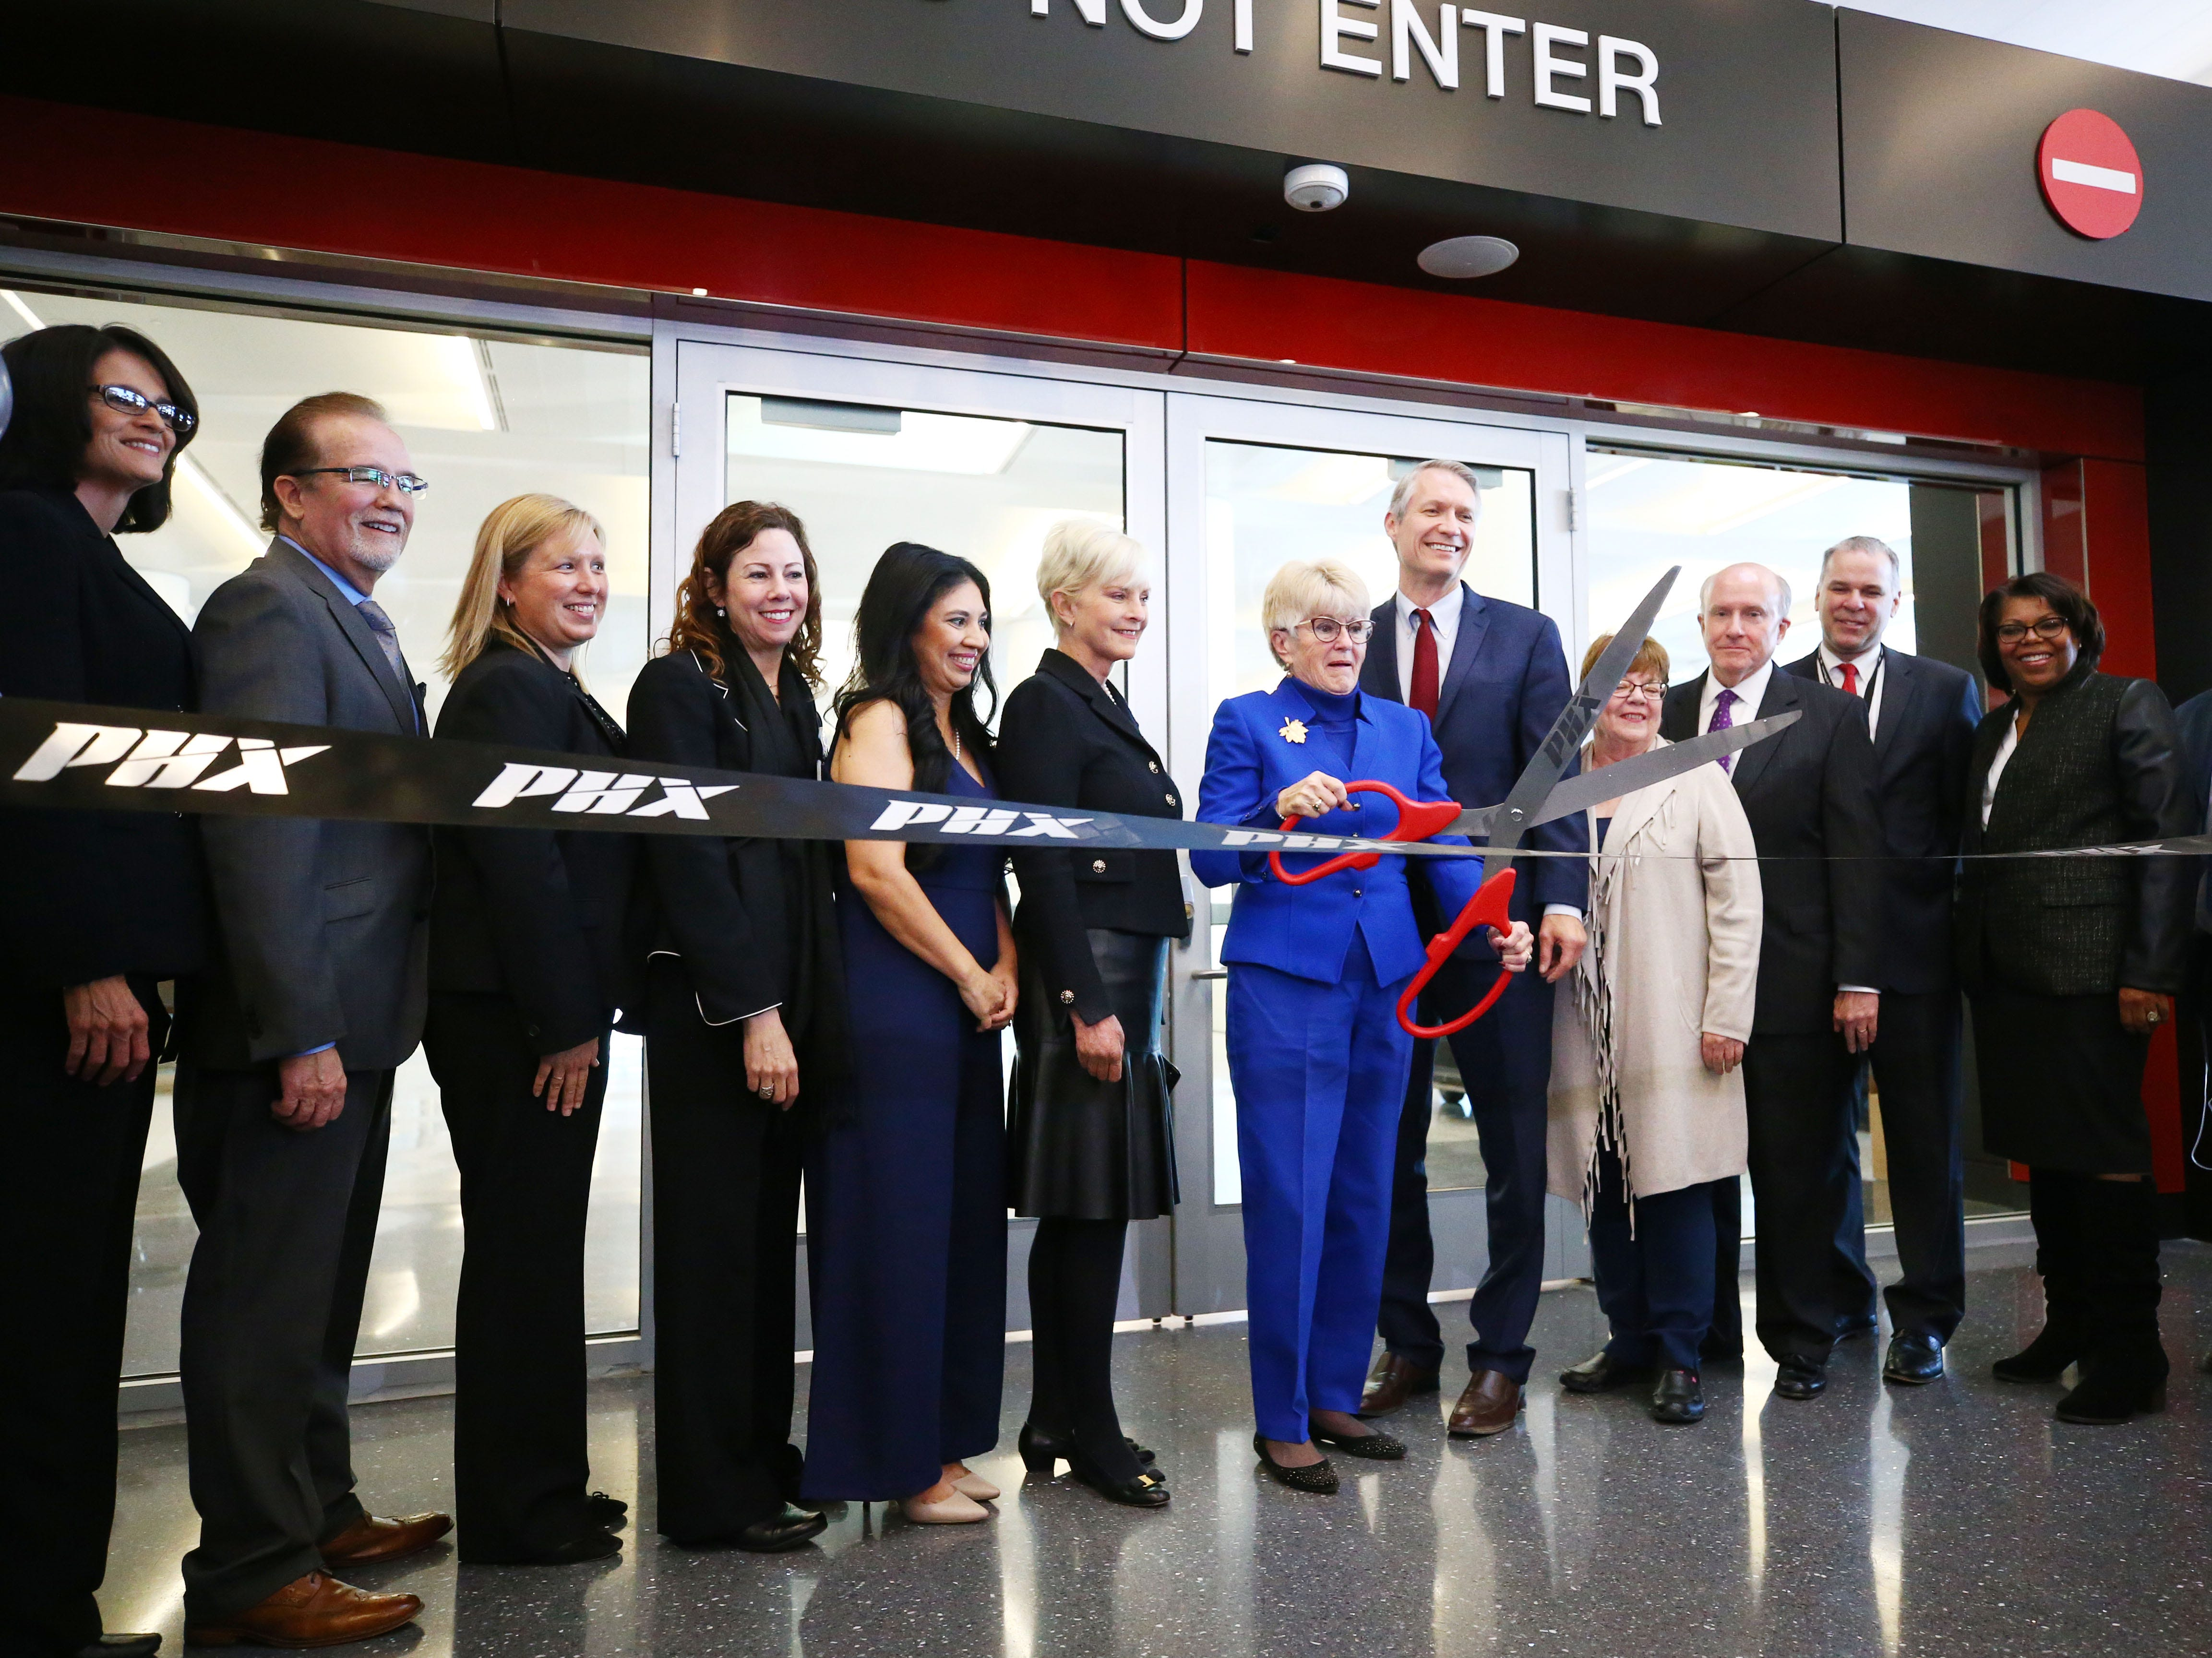 Phoenix Mayor Thelda Williams and Cindy McCain helped open the John S. McCain III Terminal 3, South Concourse on Monday, Jan. 7, 2019 at Phoenix Sky Harbor International Airport.